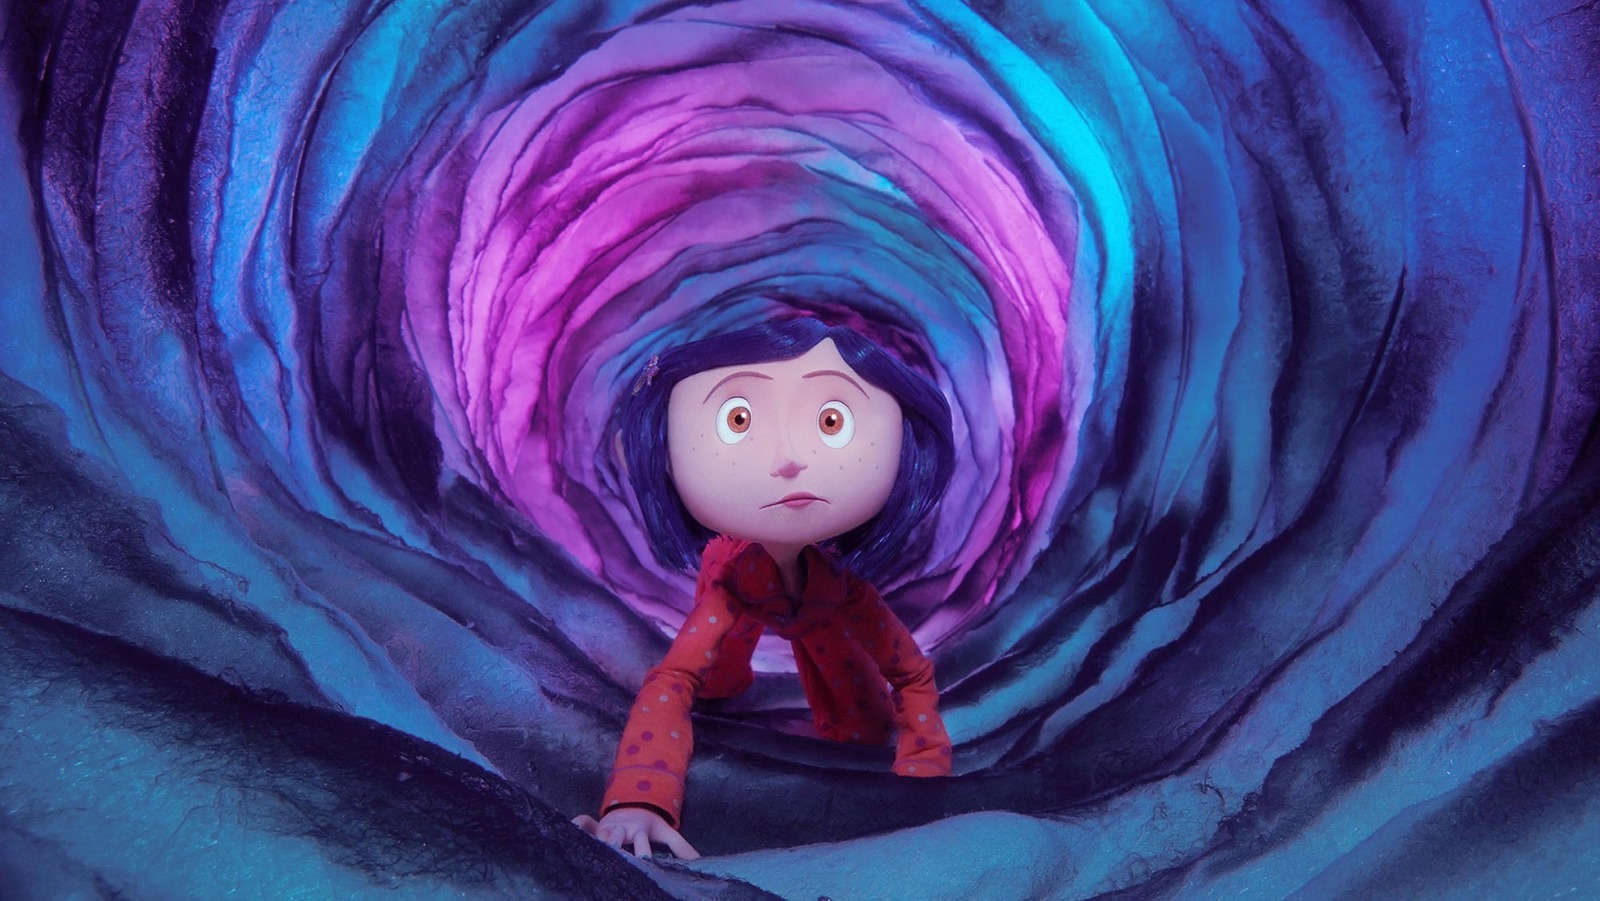 Laika's ParaNorman And Coraline Return To Theaters For The Studio's 15th Anniversary